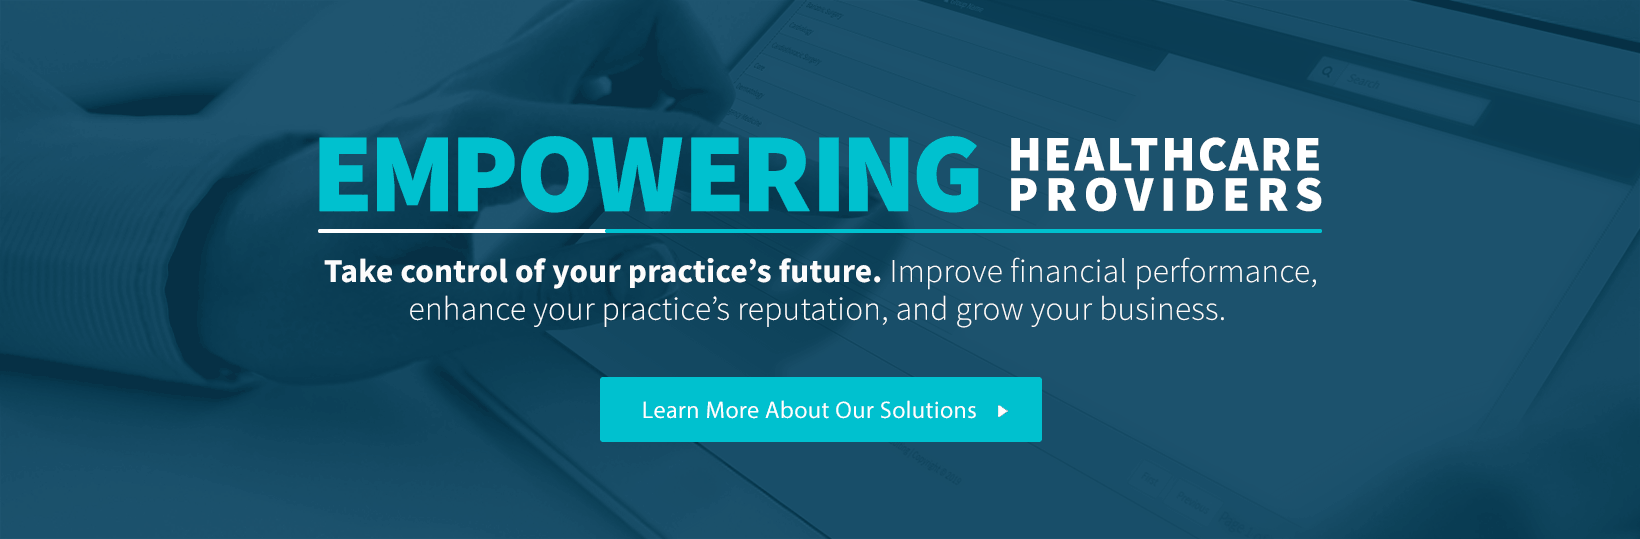 Improve financial performance, enhance your practice's reputation